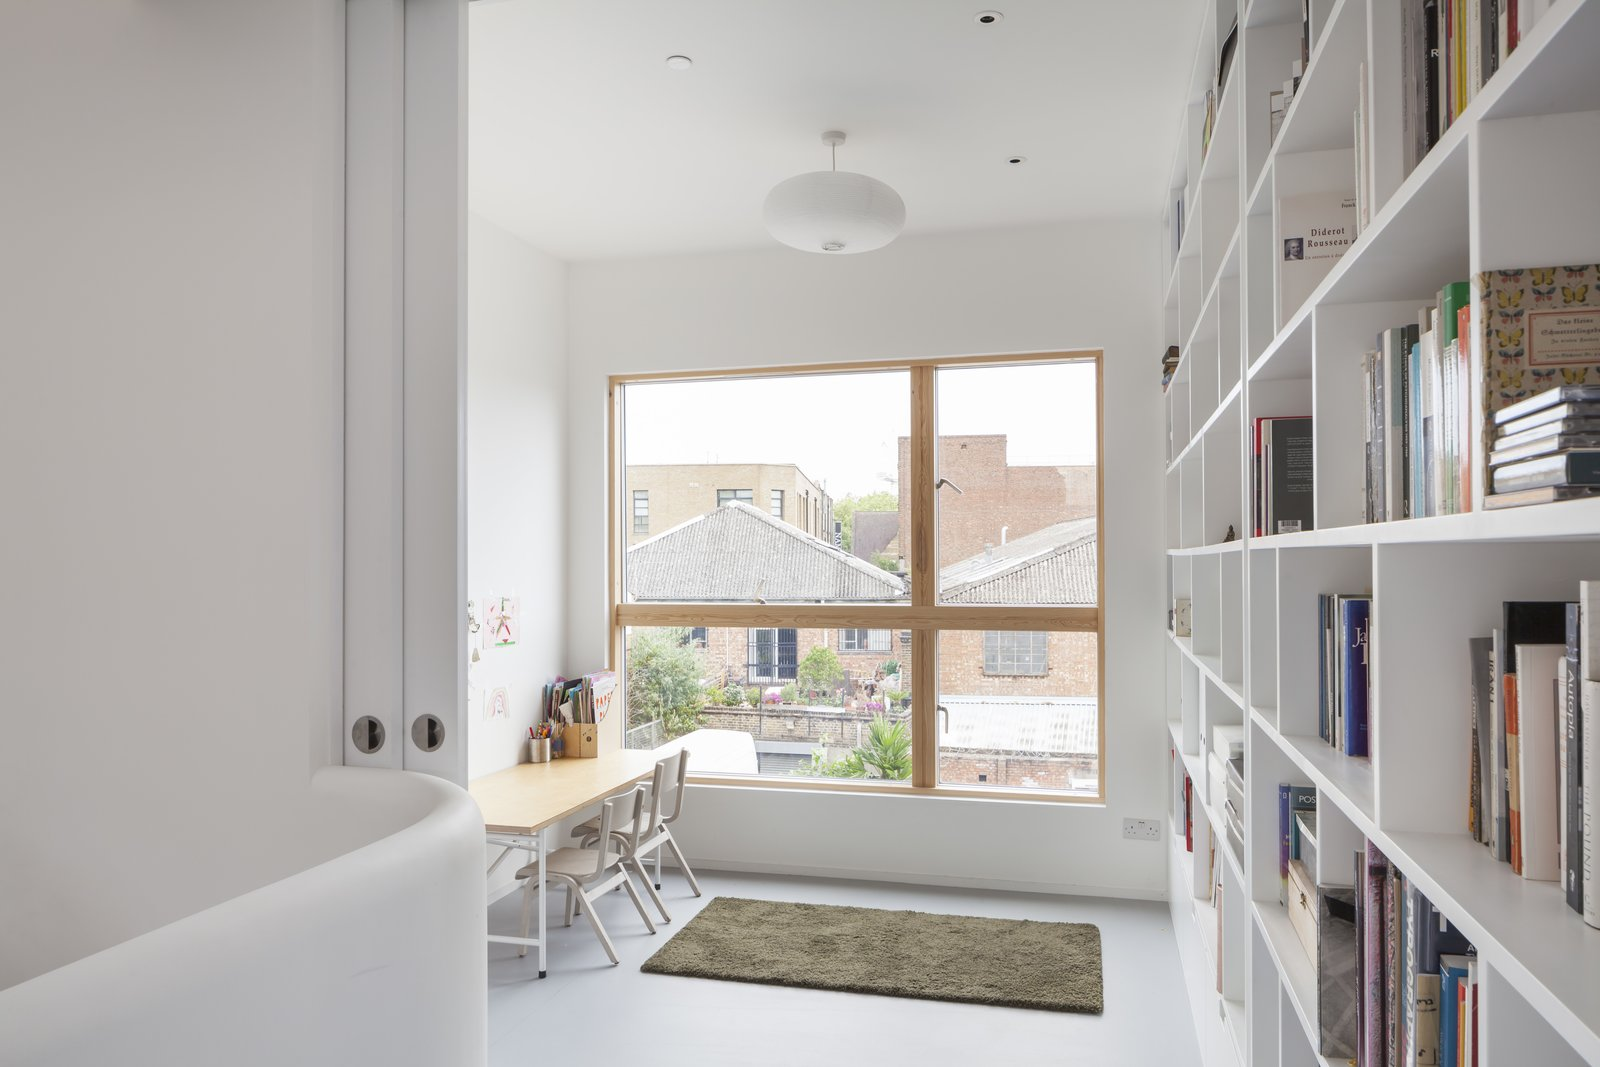 Office, Shelves, and Bookcase An office nook and library can participate in the open plan or disappear behind pocket doors.  Photos from A Clever Sunken Roof Fills a London Terrace House with Light